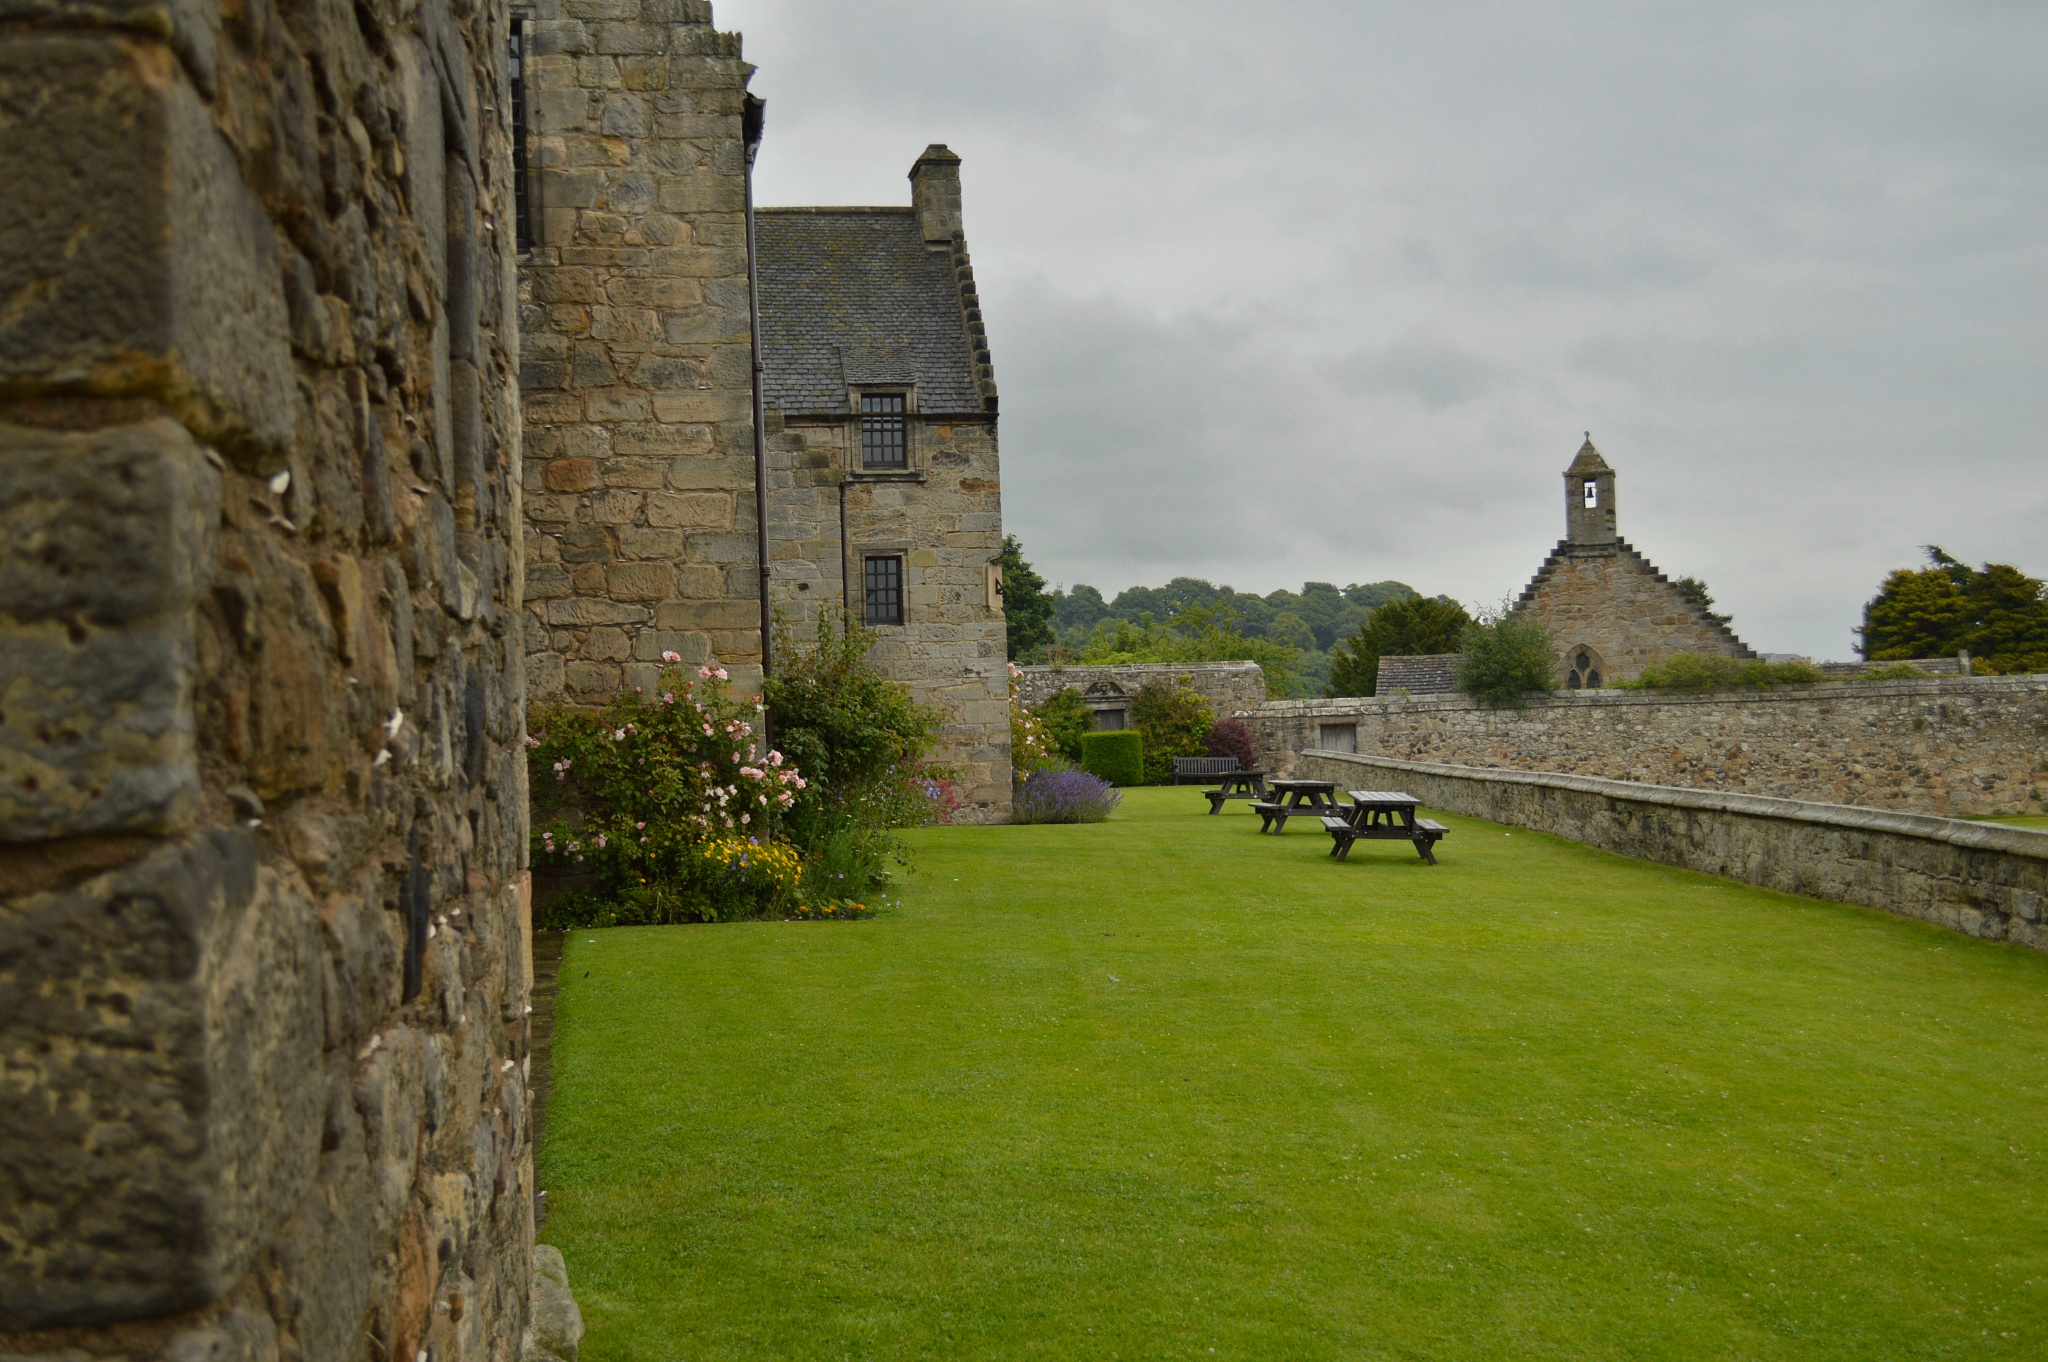 Grounds of Aberdour Castle by John White